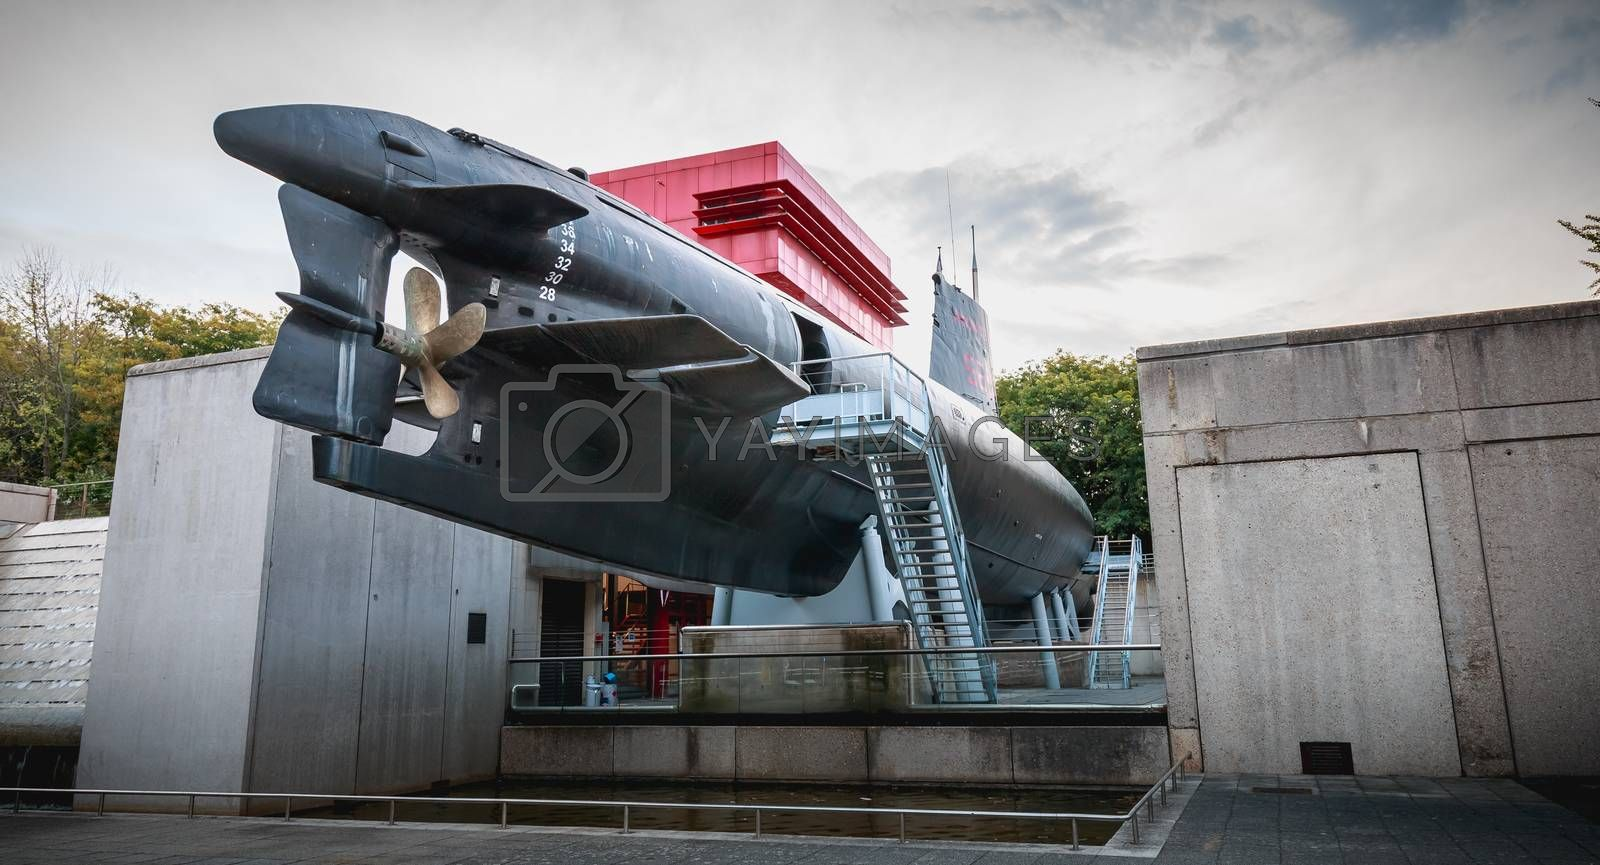 Paris, France - October 6, 2018: exhibition of the Argonaute, French submarine S636 put into service on October 23, 1958 and disarmed on July 31, 1982, opened to the public since 1991 in front of the City of Science and Industry